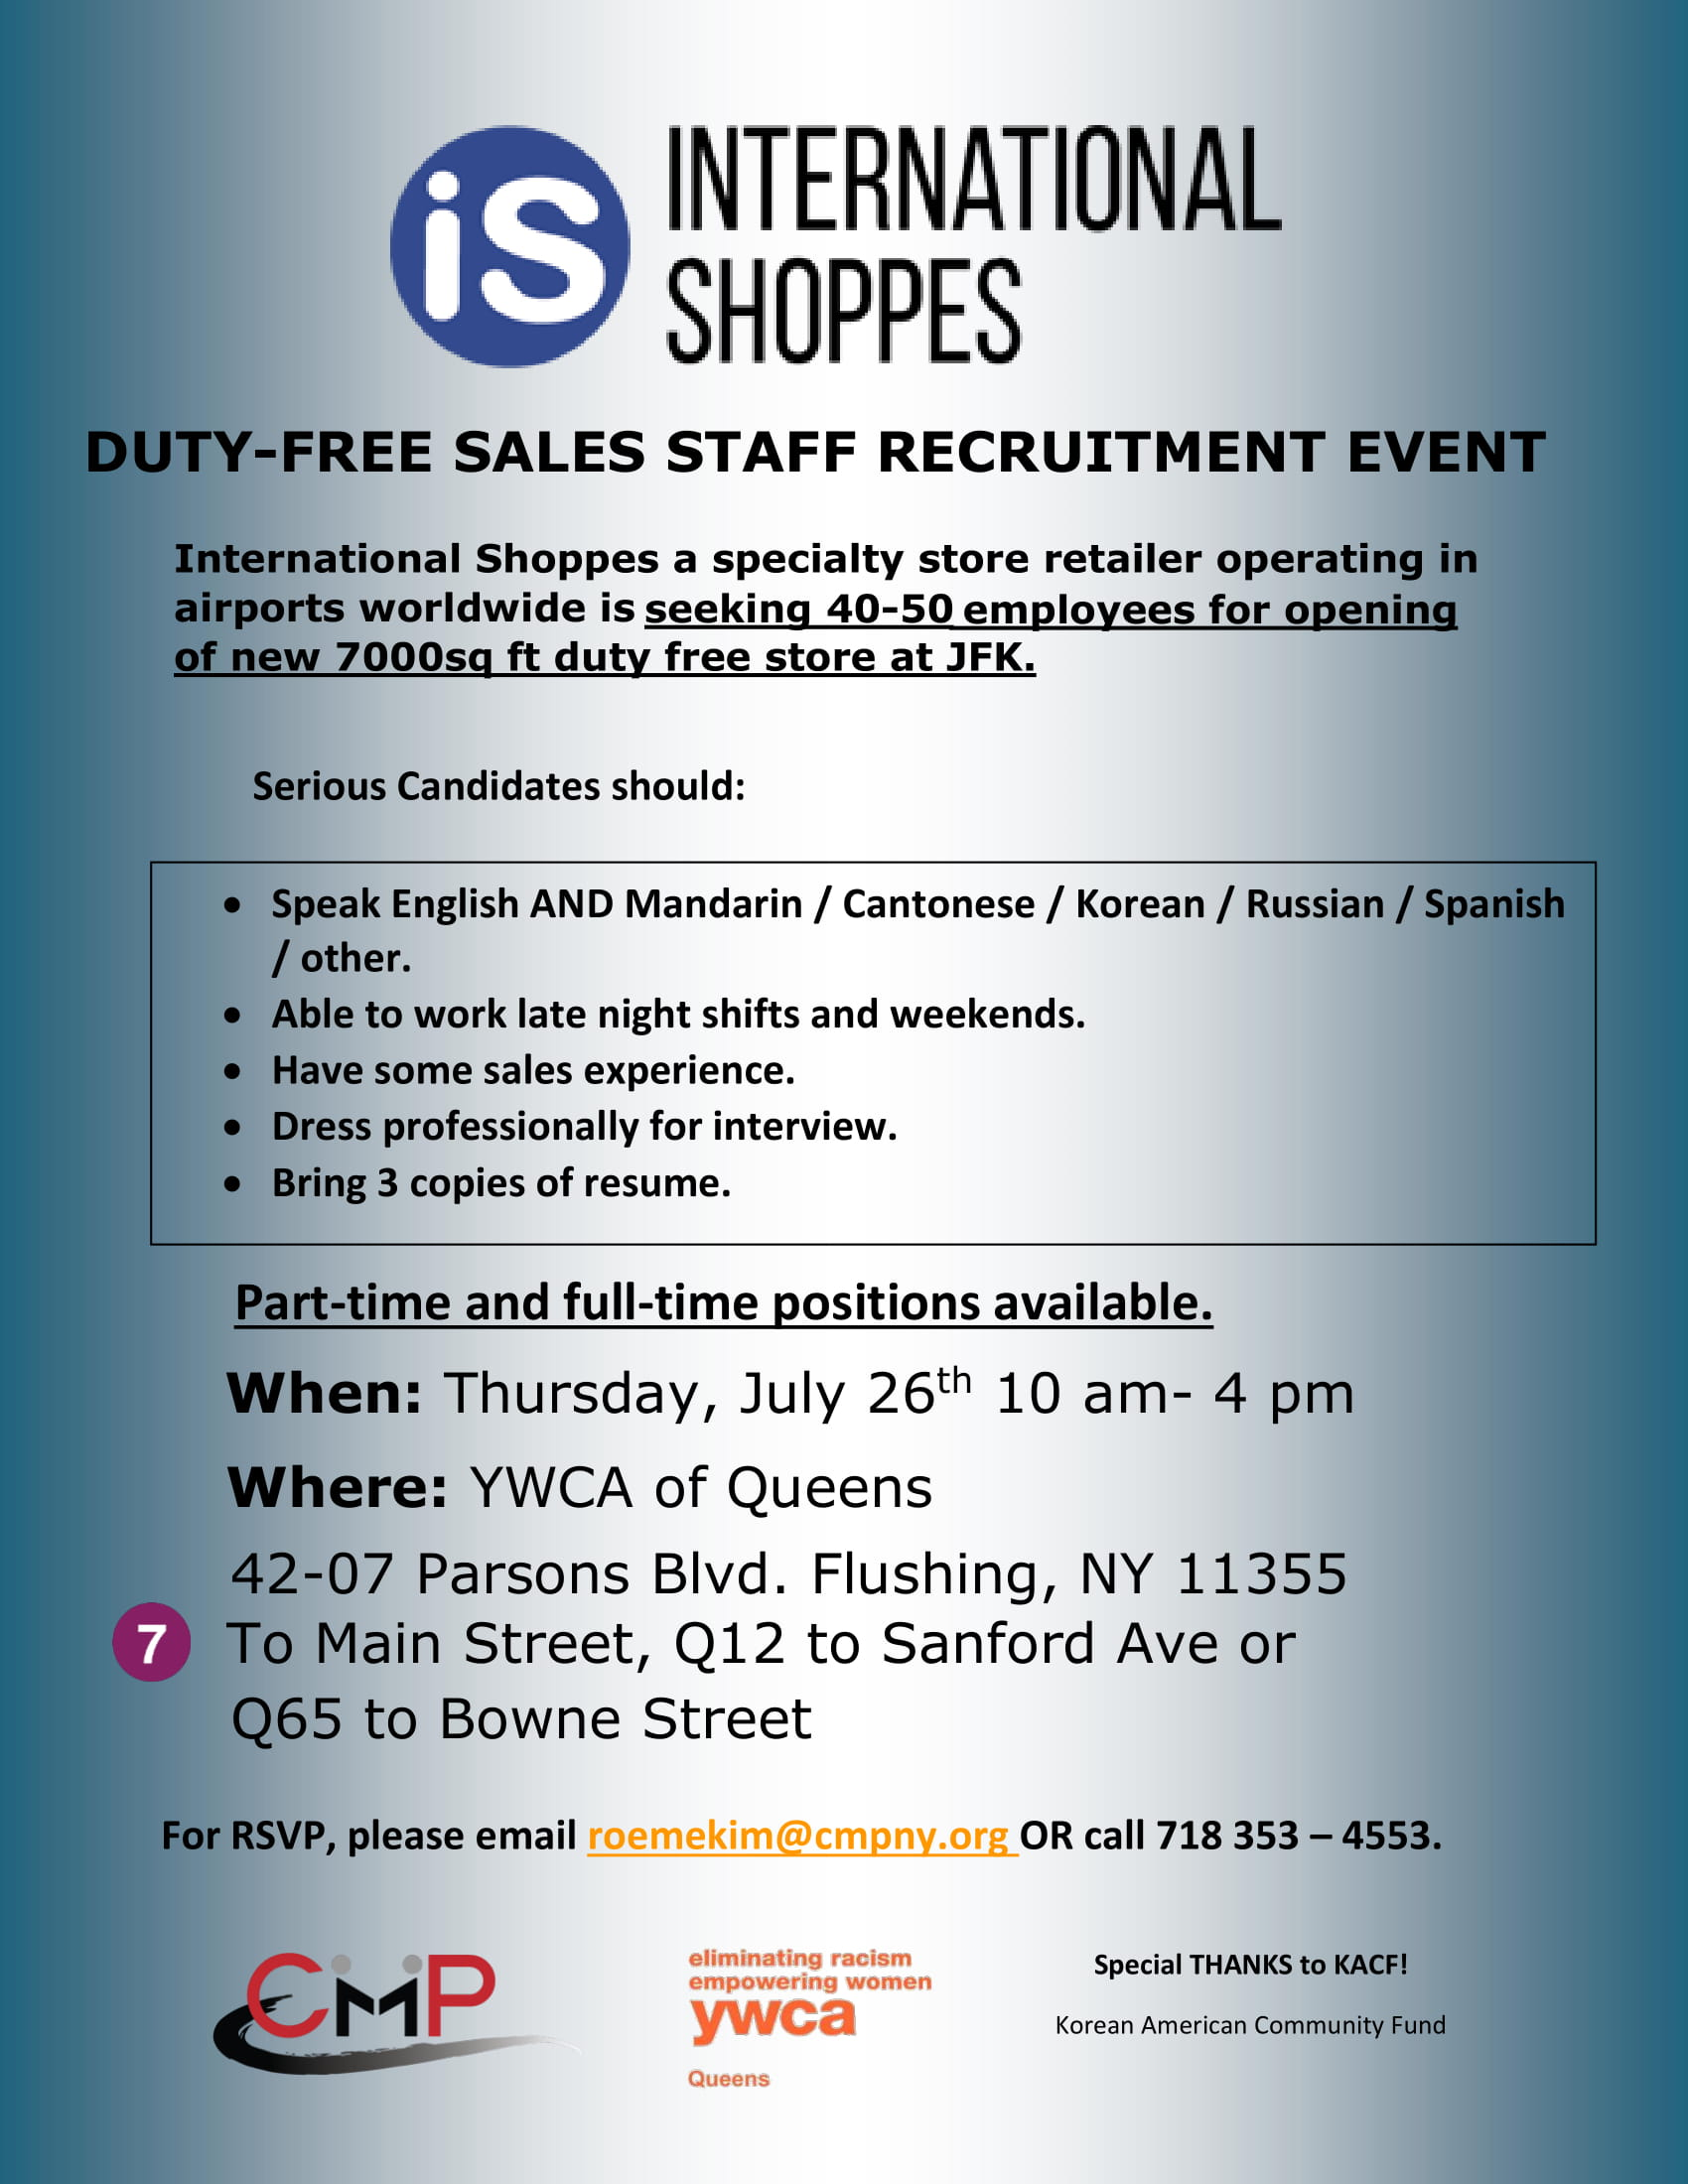 Internatonal Shoppe Recruitment Flyer  7-19 2-1.jpg